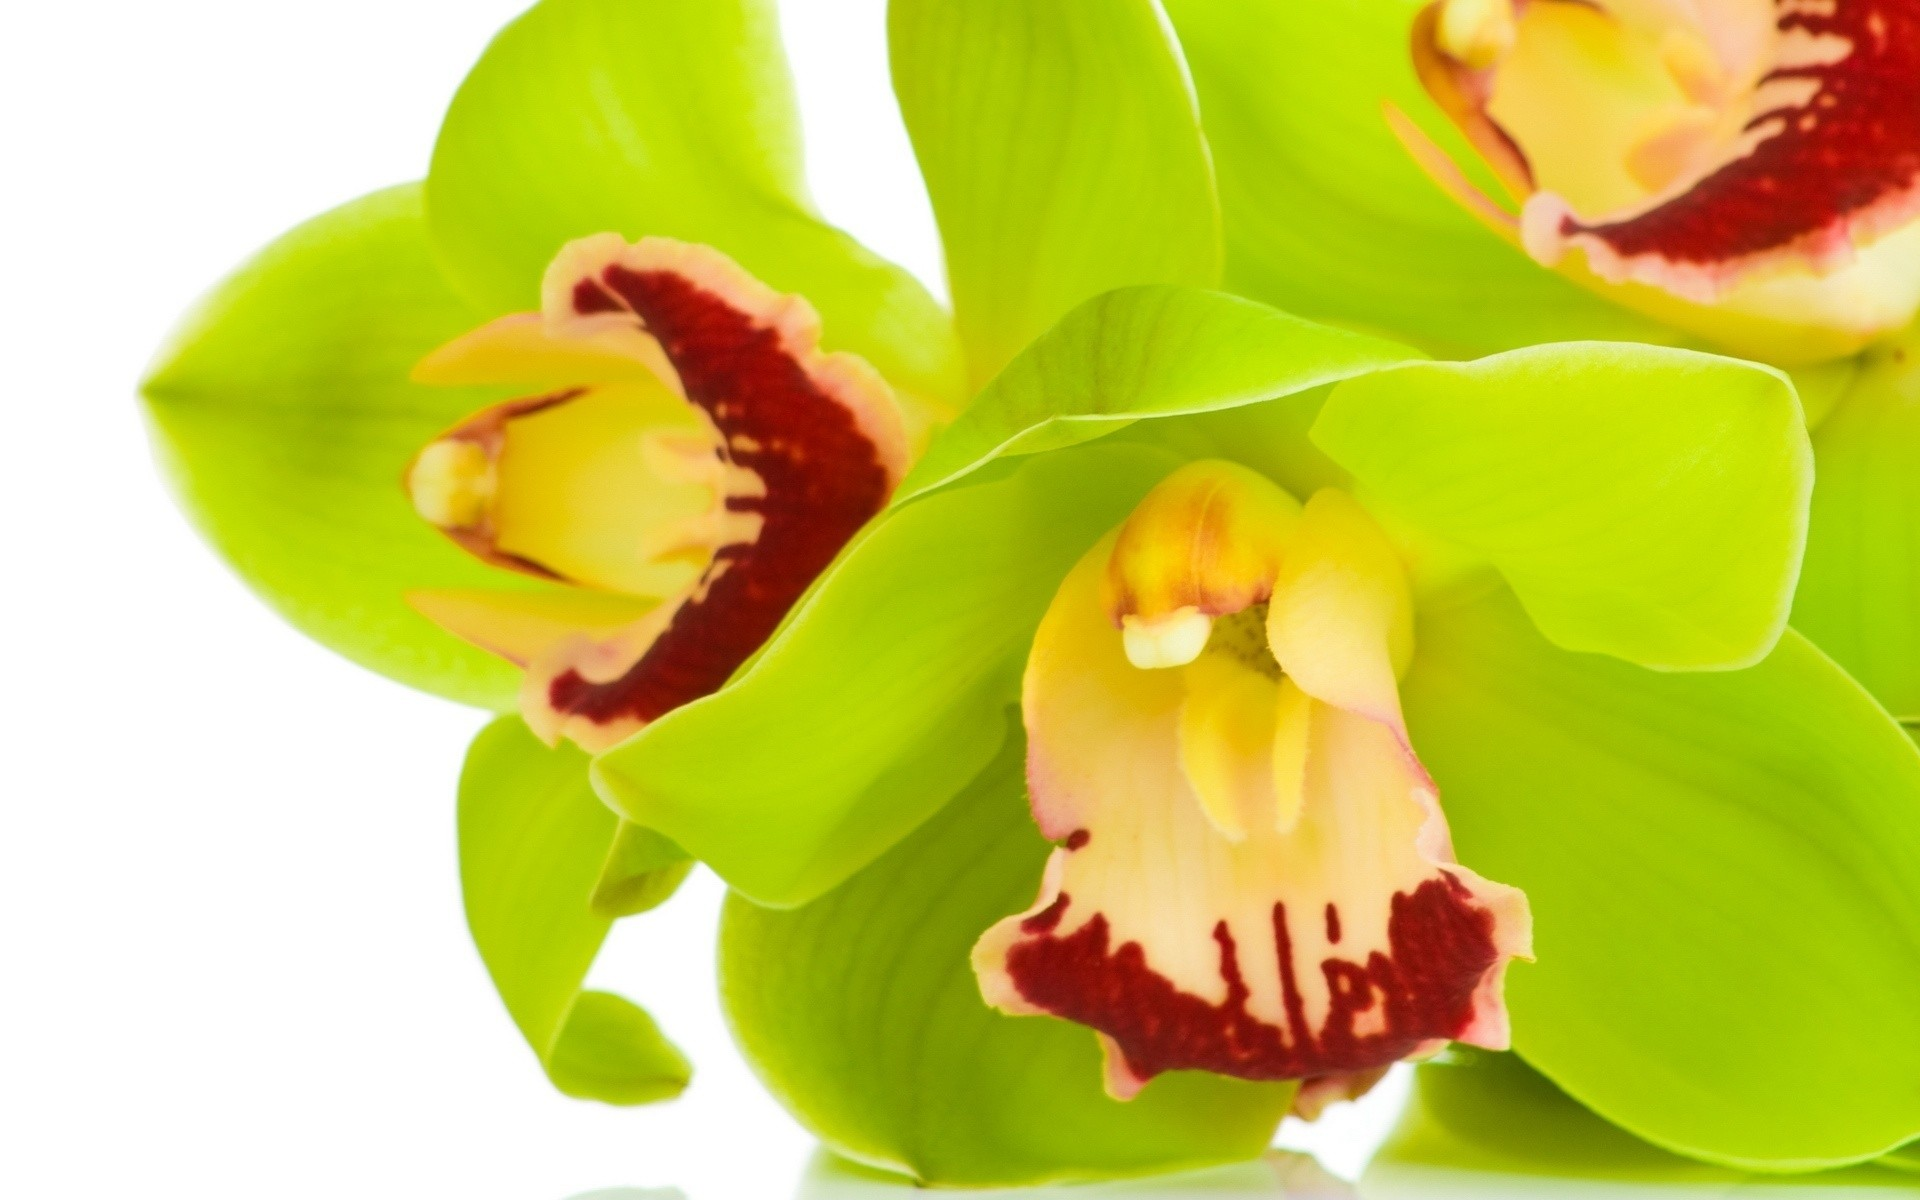 orchids wallpapers best - photo #15